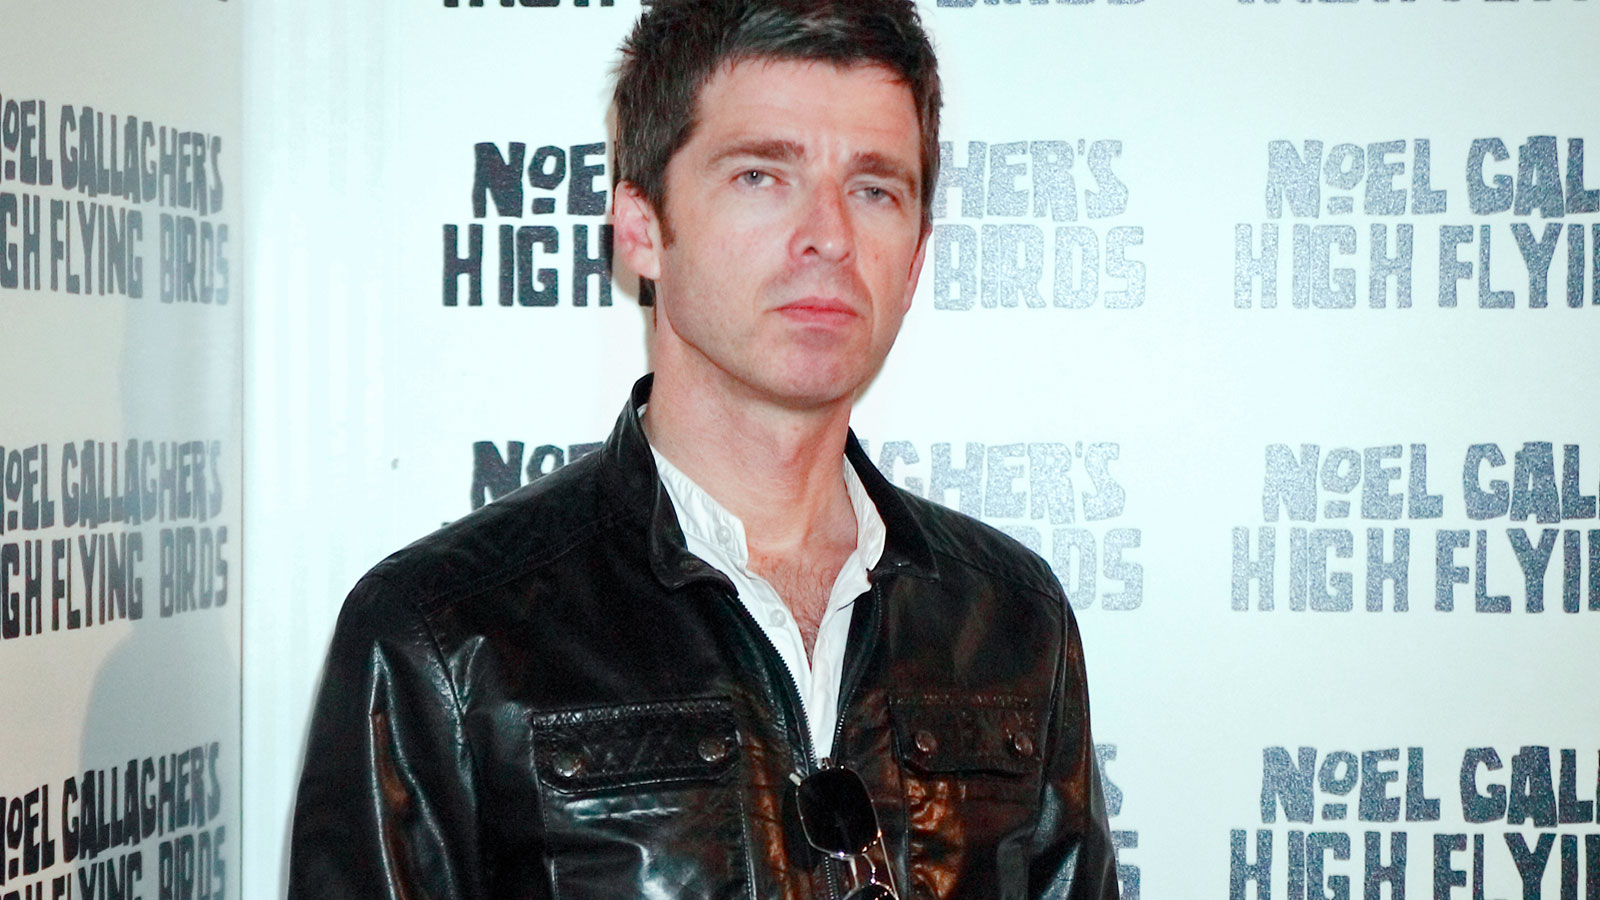 Noel Gallagher photographer